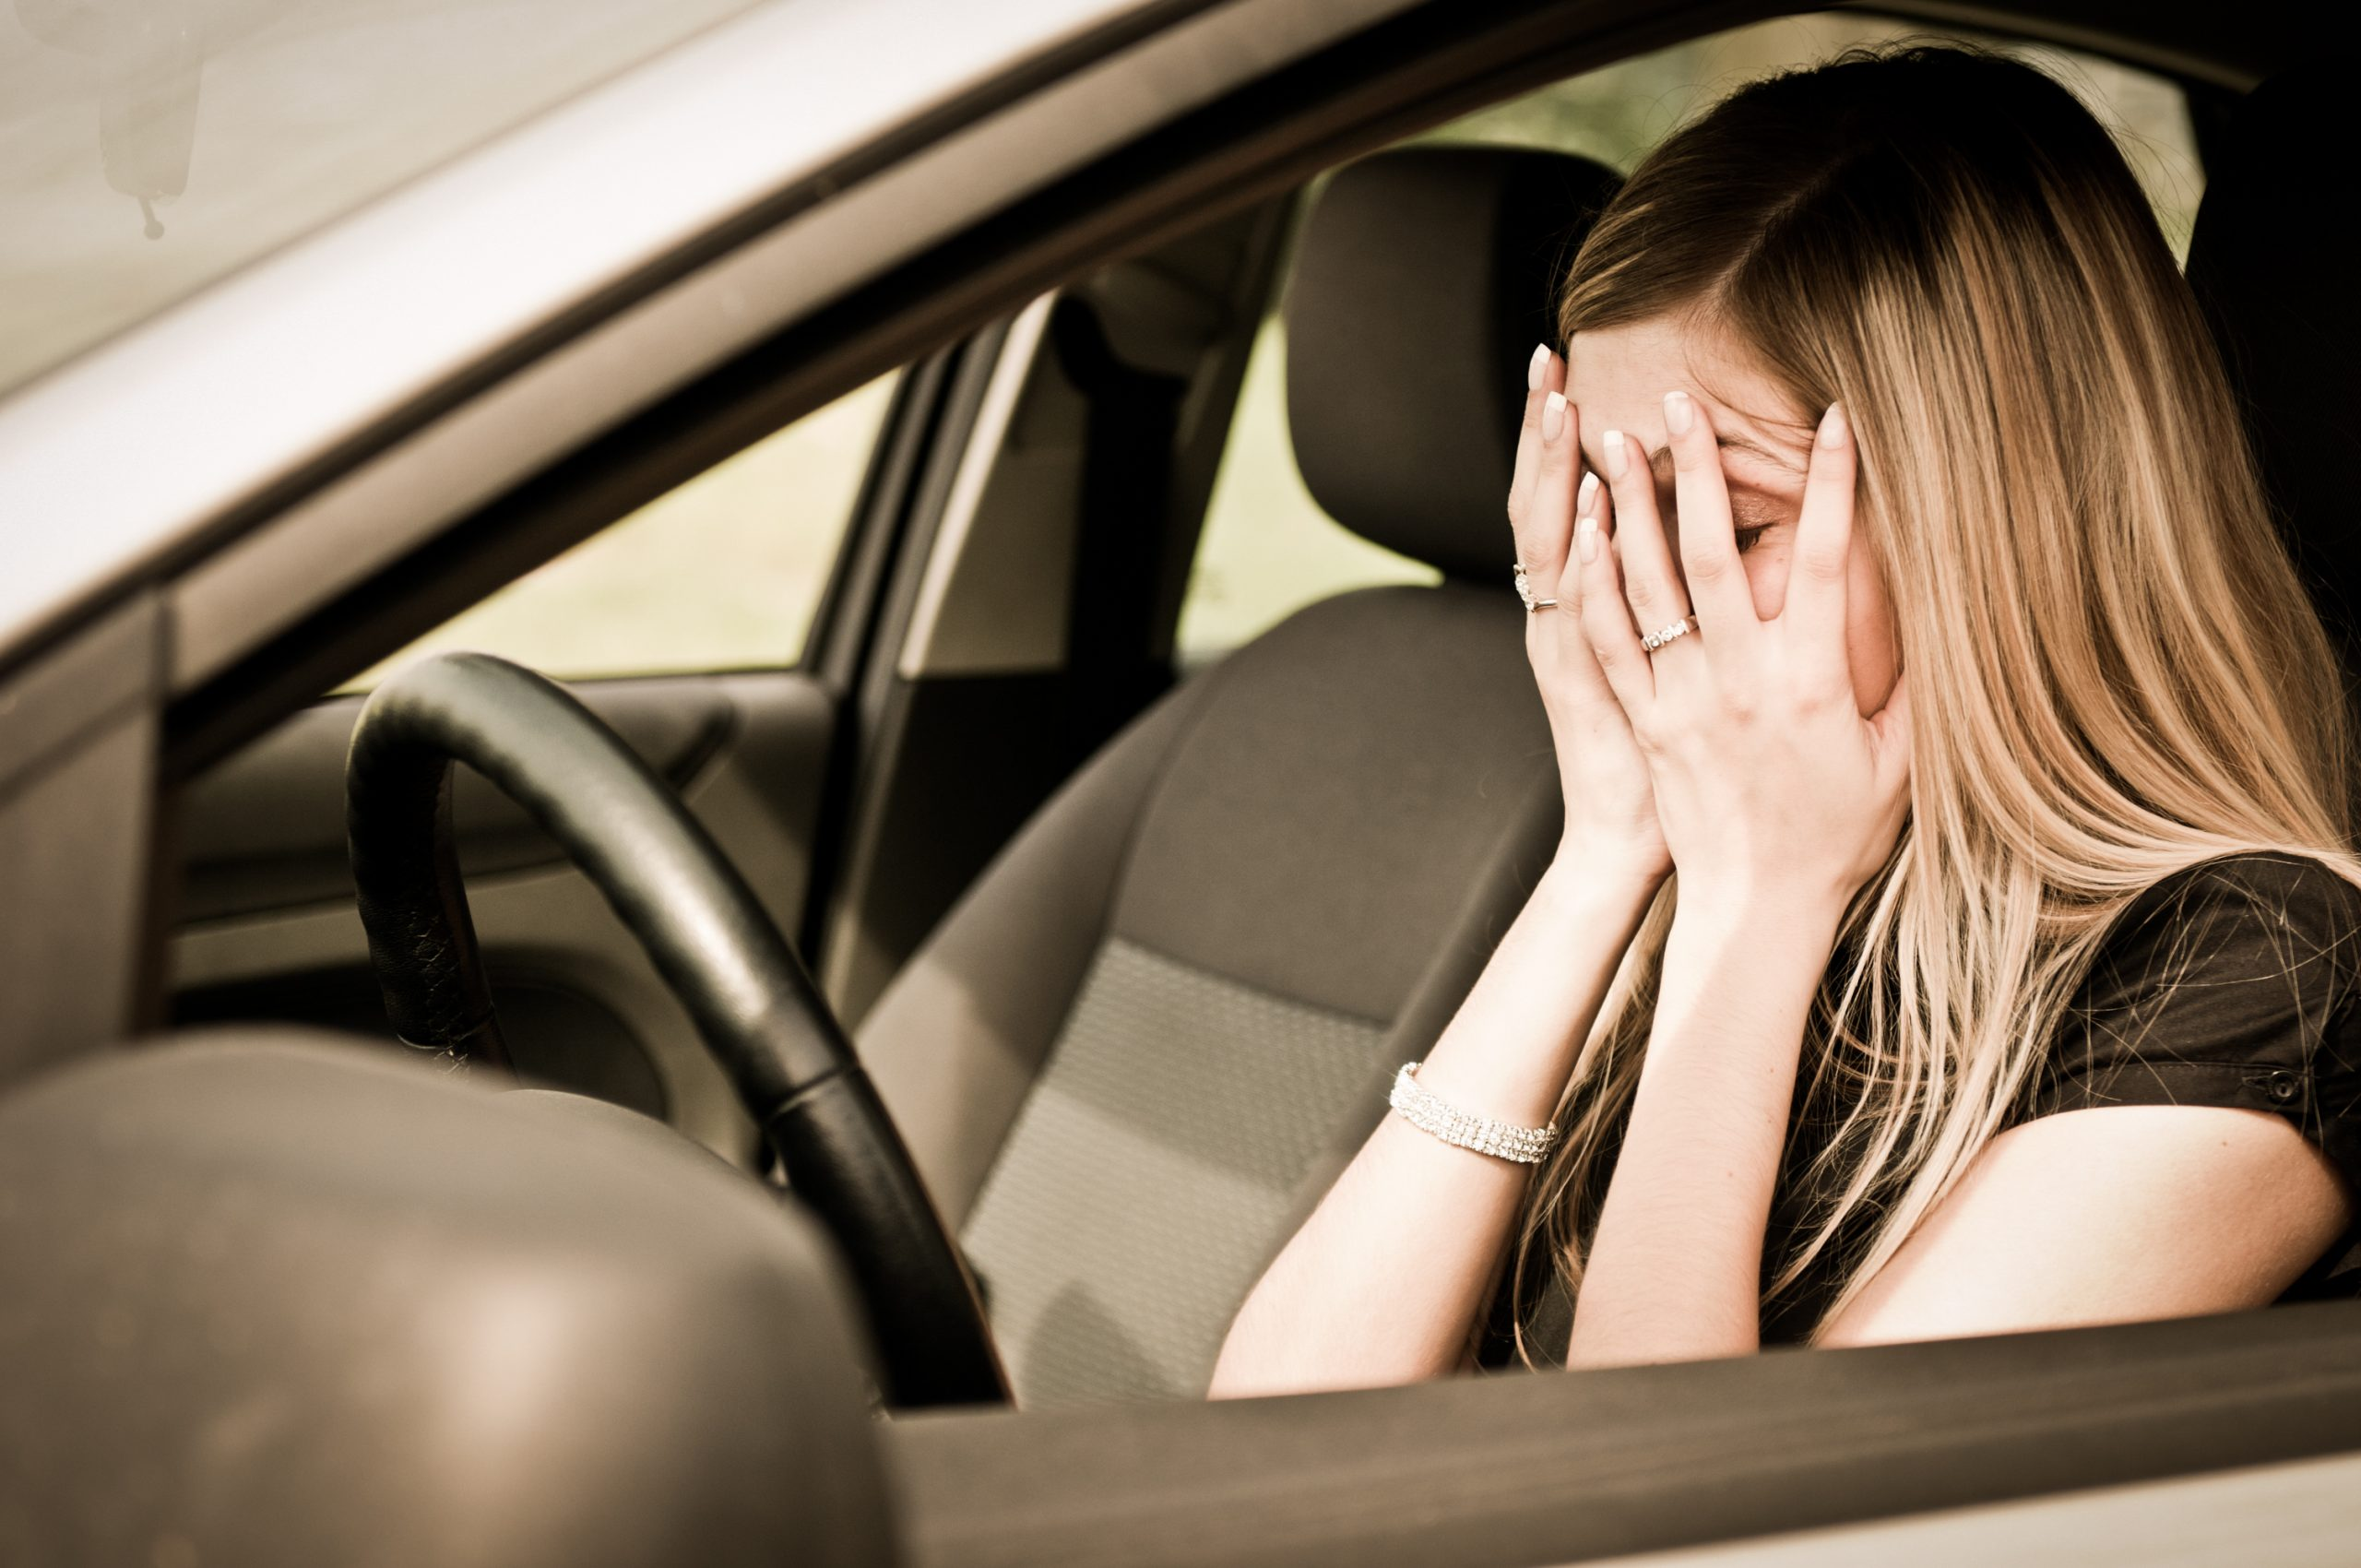 Comparative Negligence Laws in Louisville, Kentucky Determine Fault in Accident